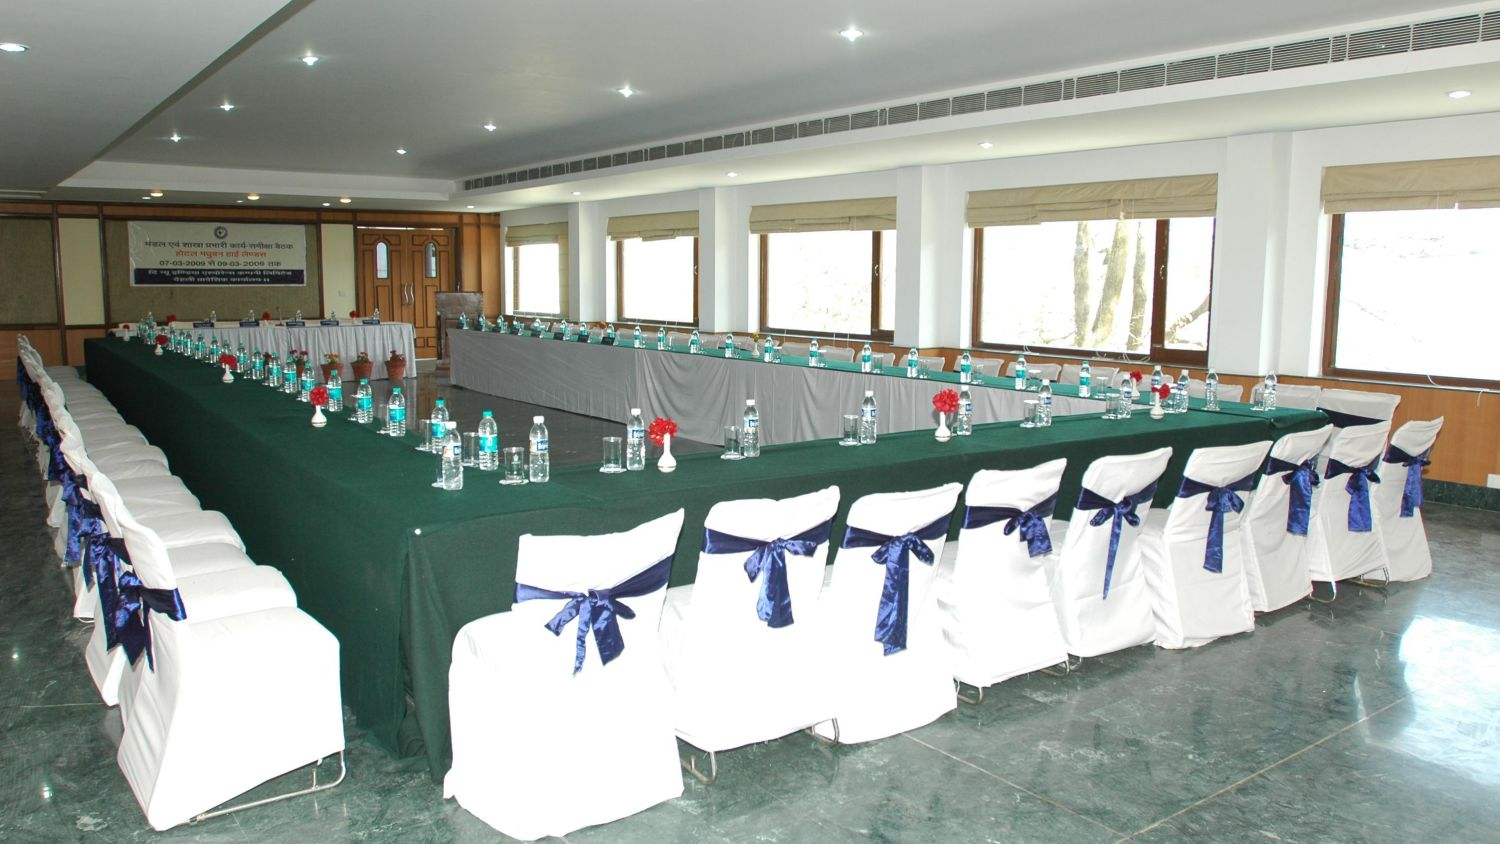 Banquet Hall in Mussoorie, Conference Hall in Mussoorie, Hotel Madhuban Sarovar Portico, Mussoorie